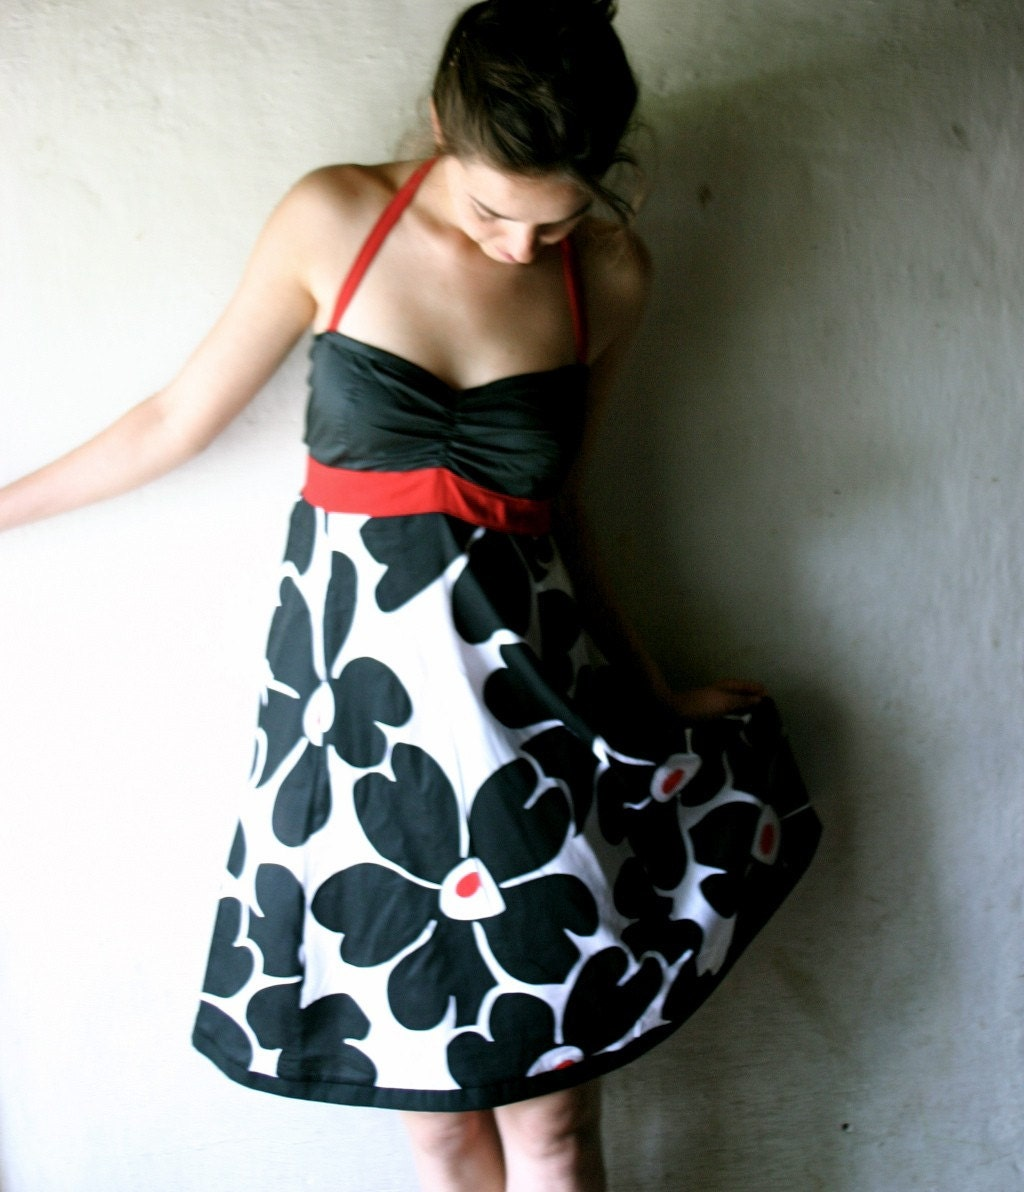 Black-Red-White Halter dress